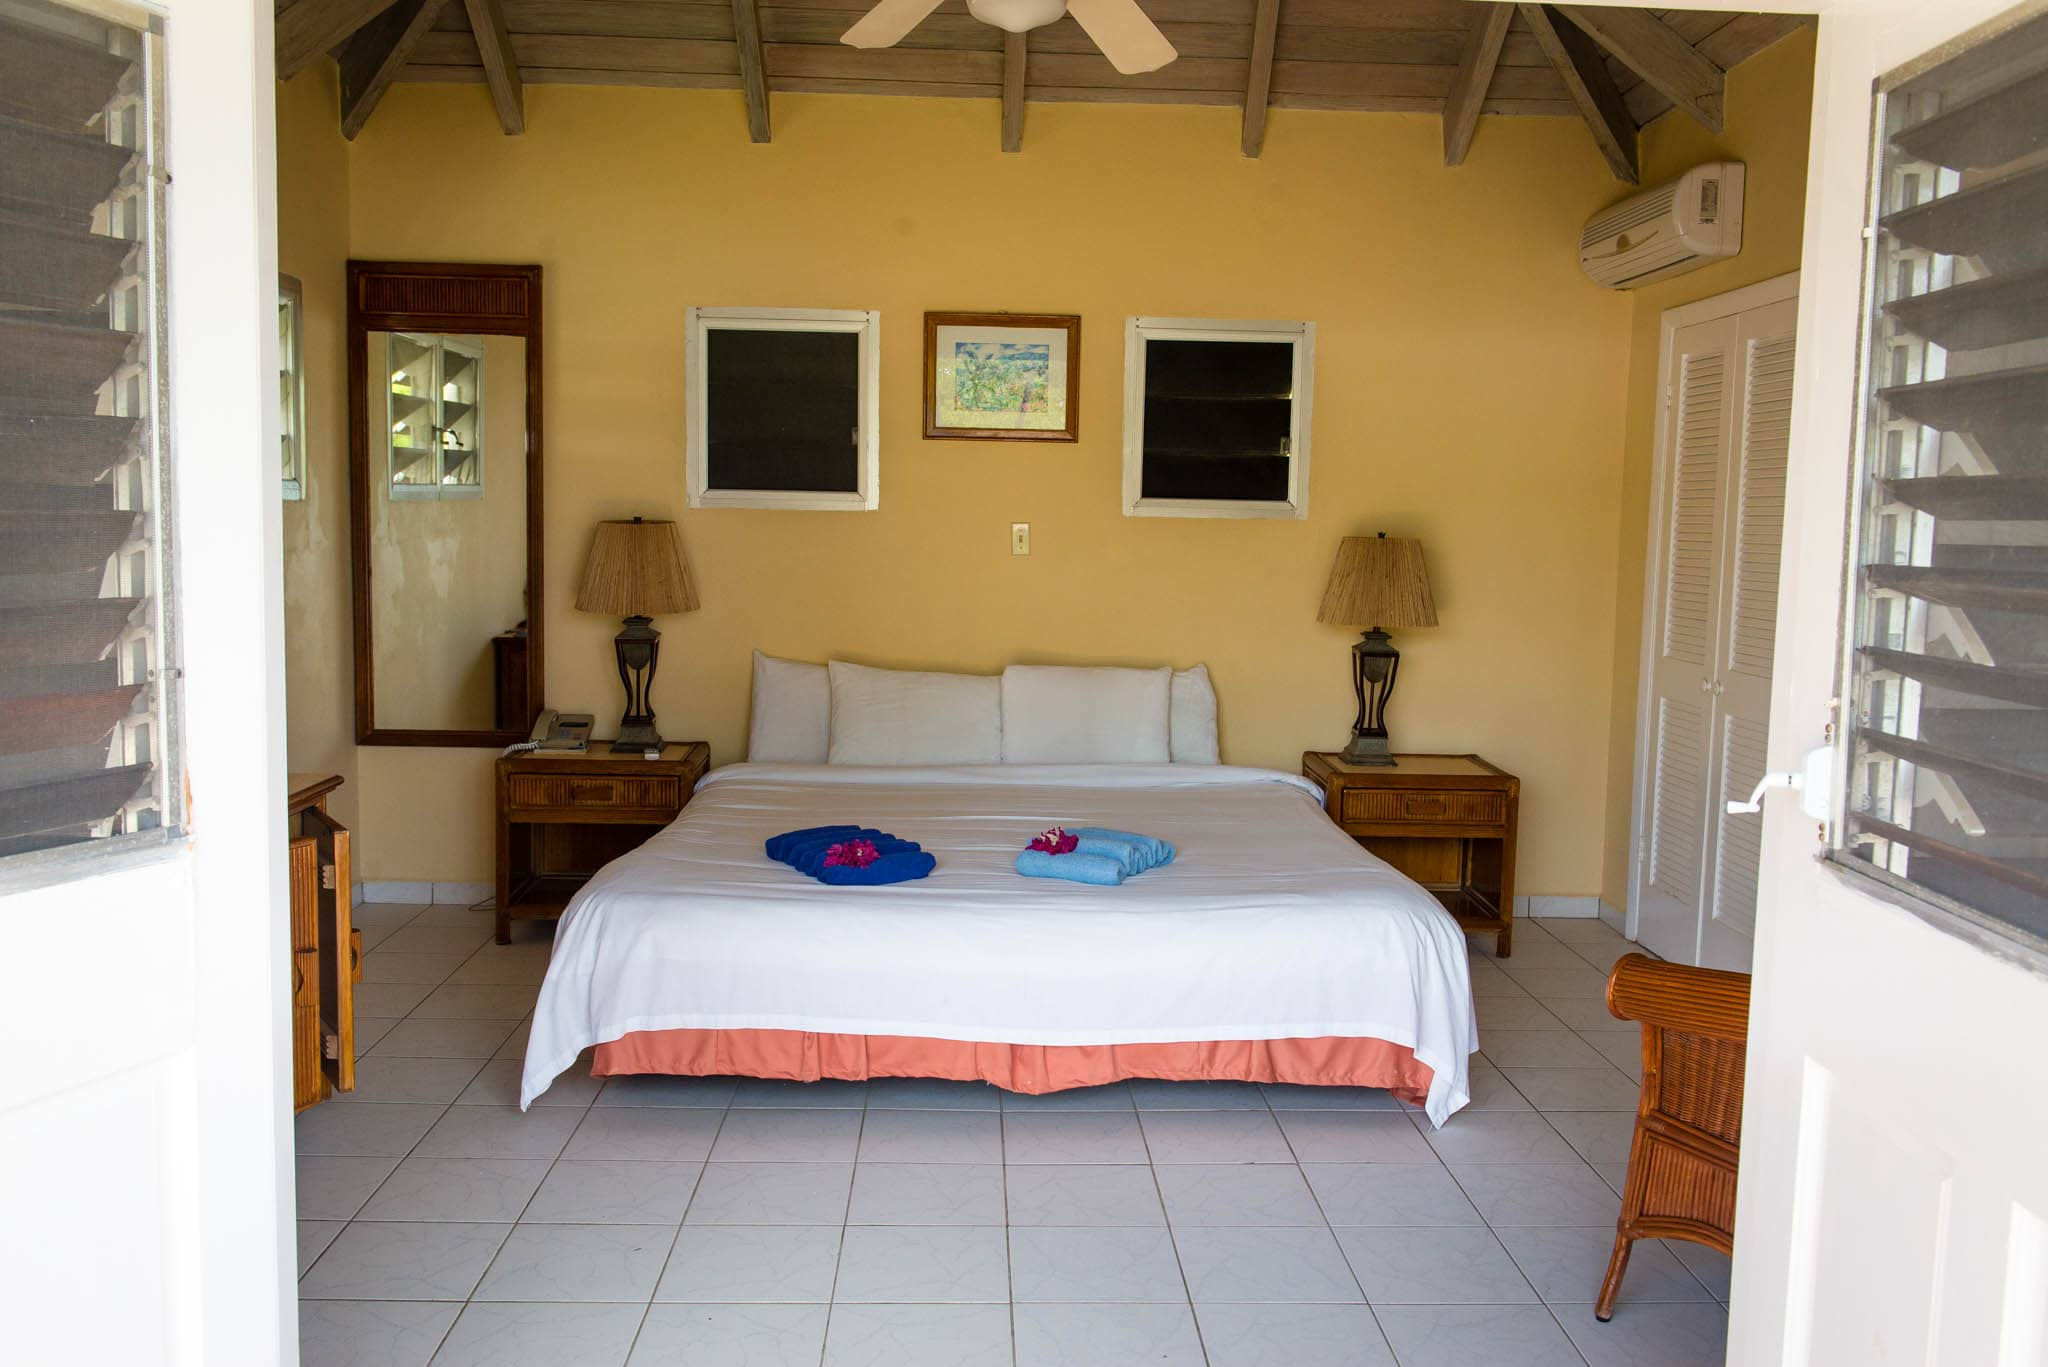 Quaint and comfortable rooms give you that real island feel.